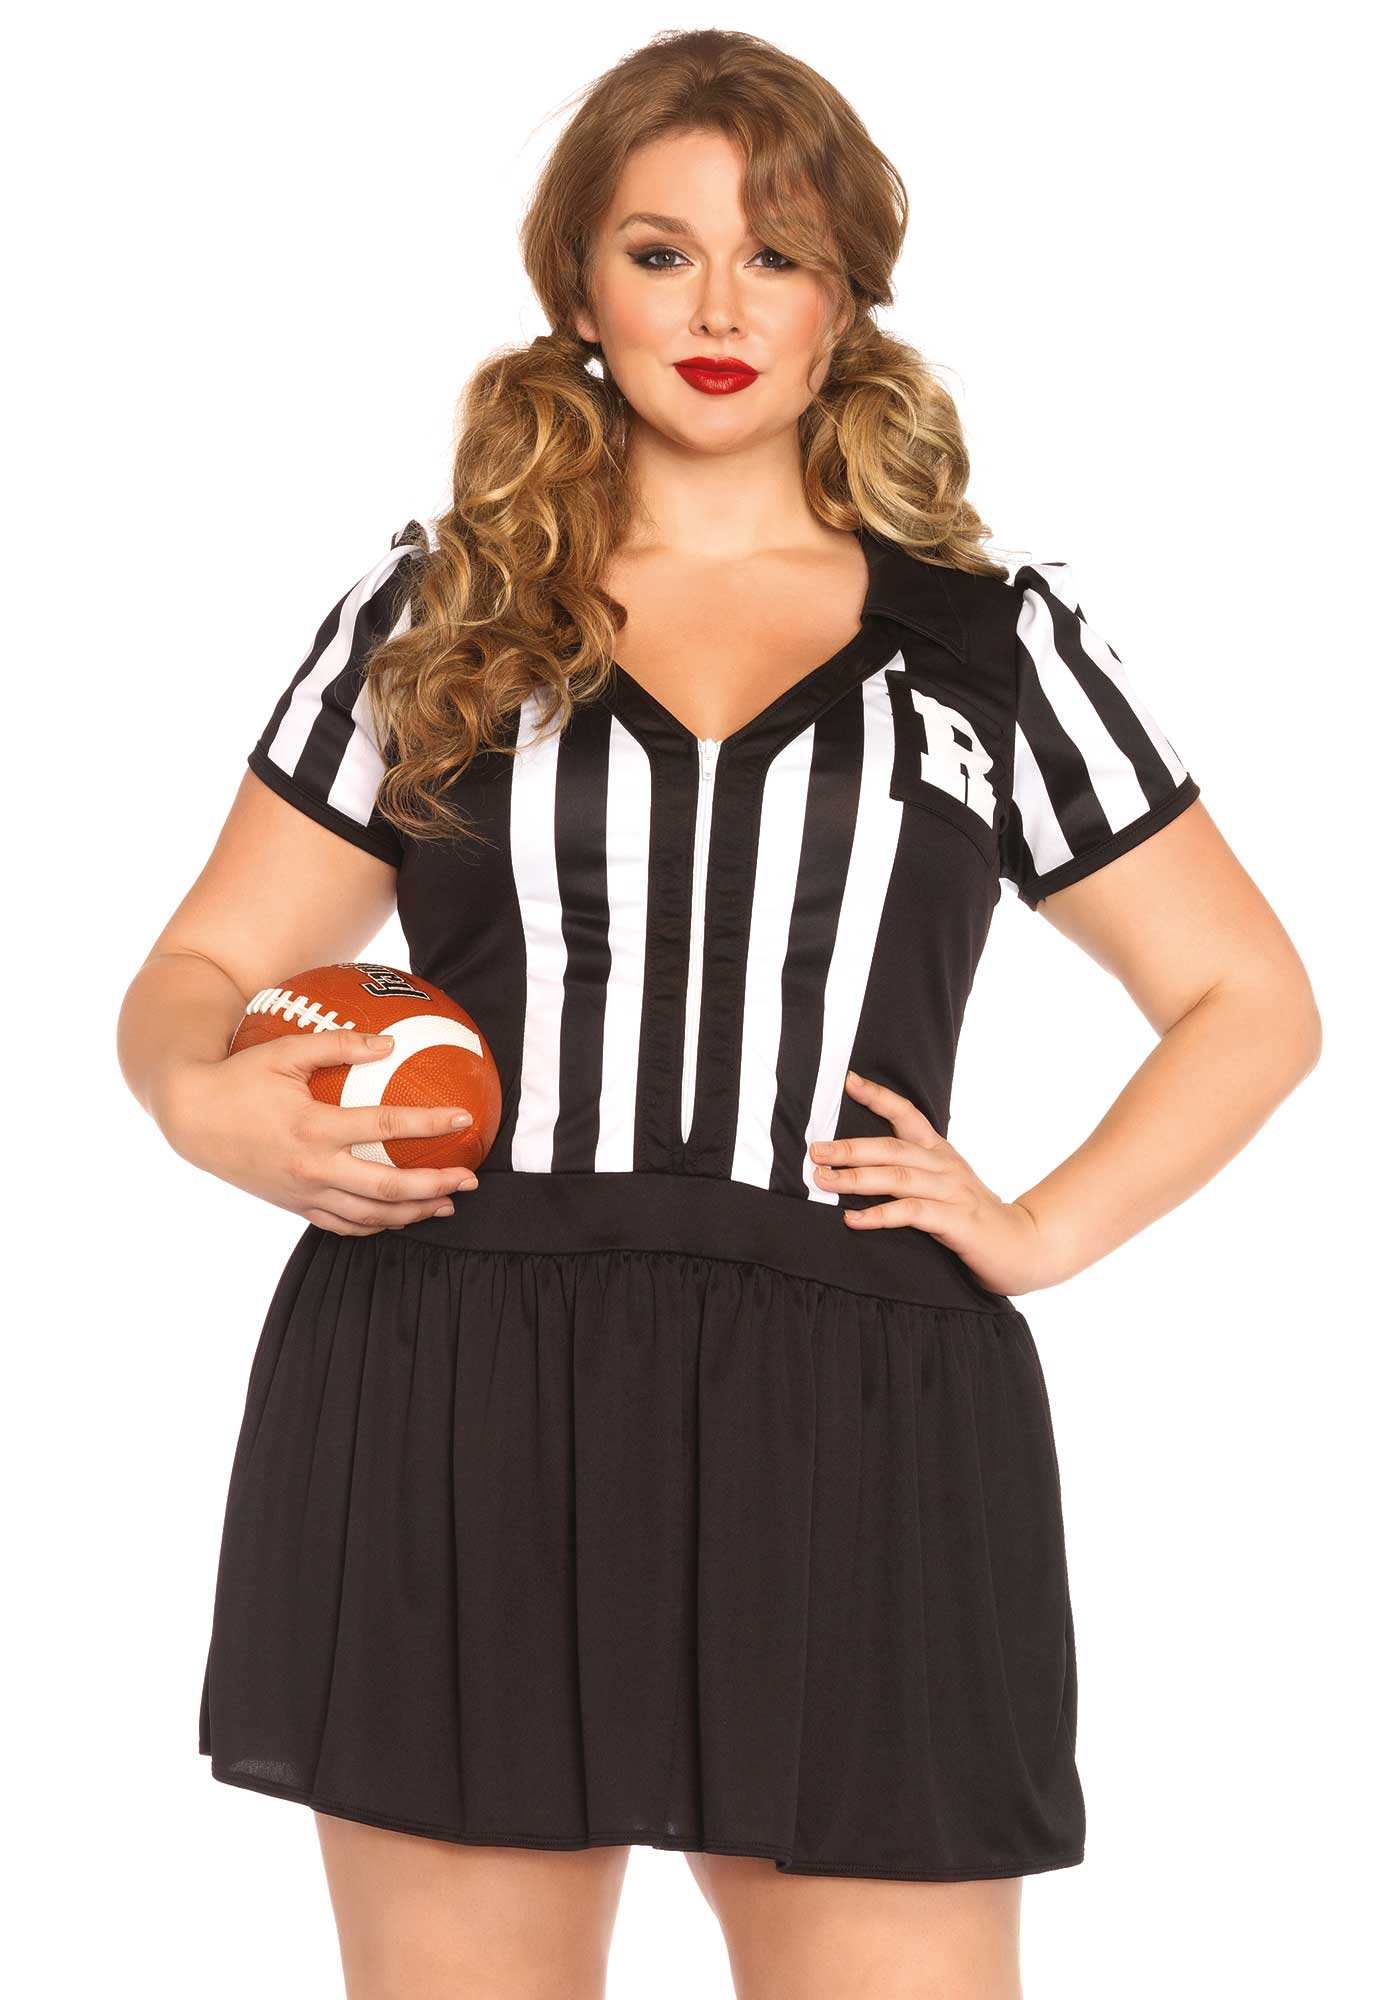 This hottie knows what she's doing. This referee or sports uniform is a dress with zipper on the fron en initial pocket details. Please take note that the socks and ball are not included. The length of size 1XL-2XL, measured from the shoulder is 103cm / 41inch. The model has a length of 185 cm/ 73 inch and is wearing a size 1XL-2XL.